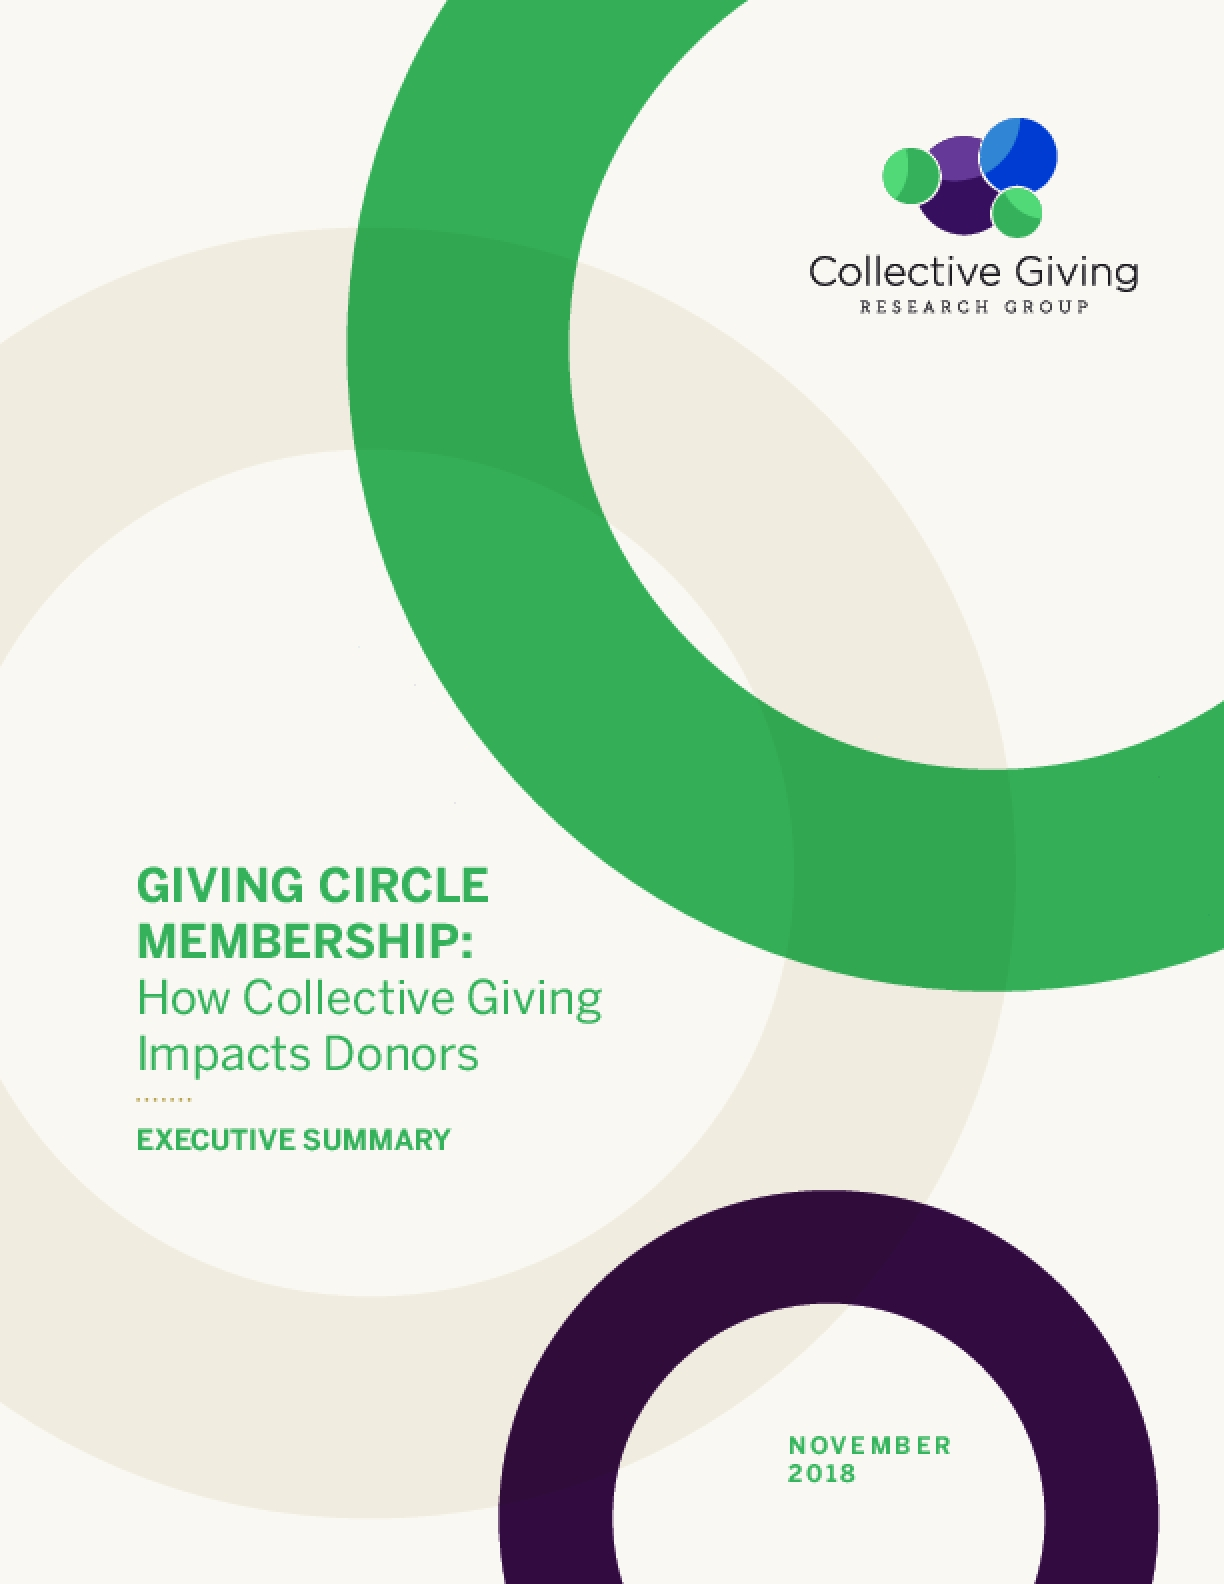 Giving Circle Membership: How Collective Giving Impacts Donors